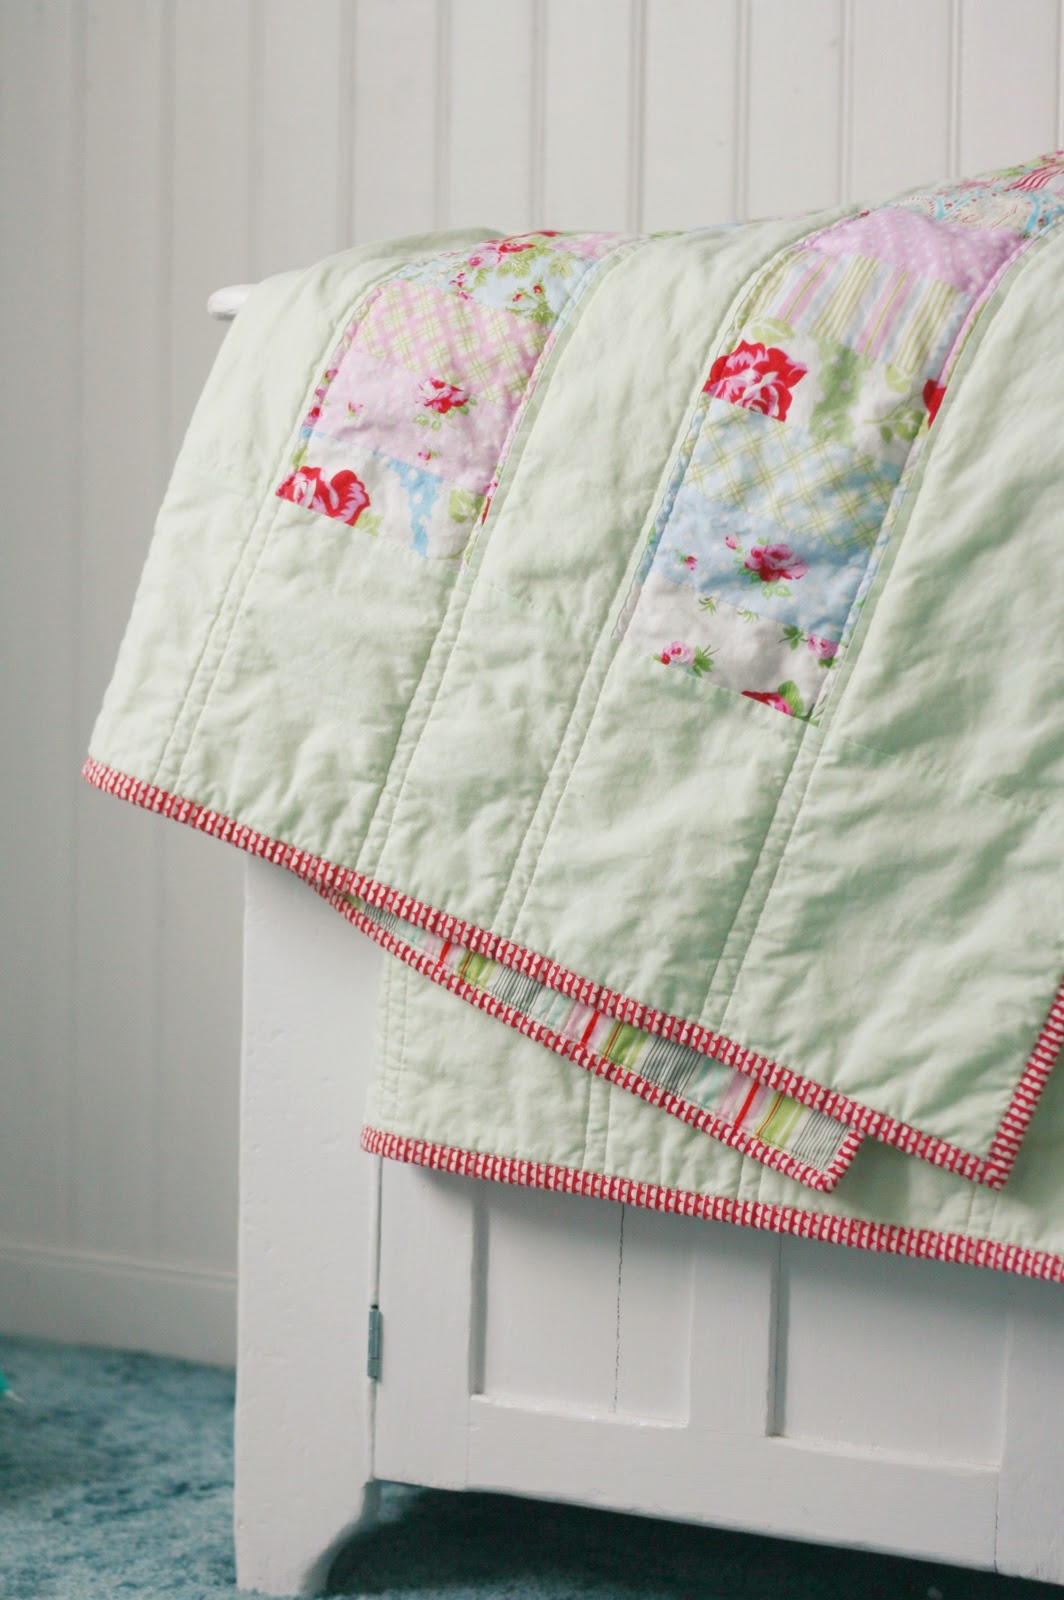 for quilt of essex bedspreads shabby floral popular bedding chic shab at target intended simply quilting image quilts